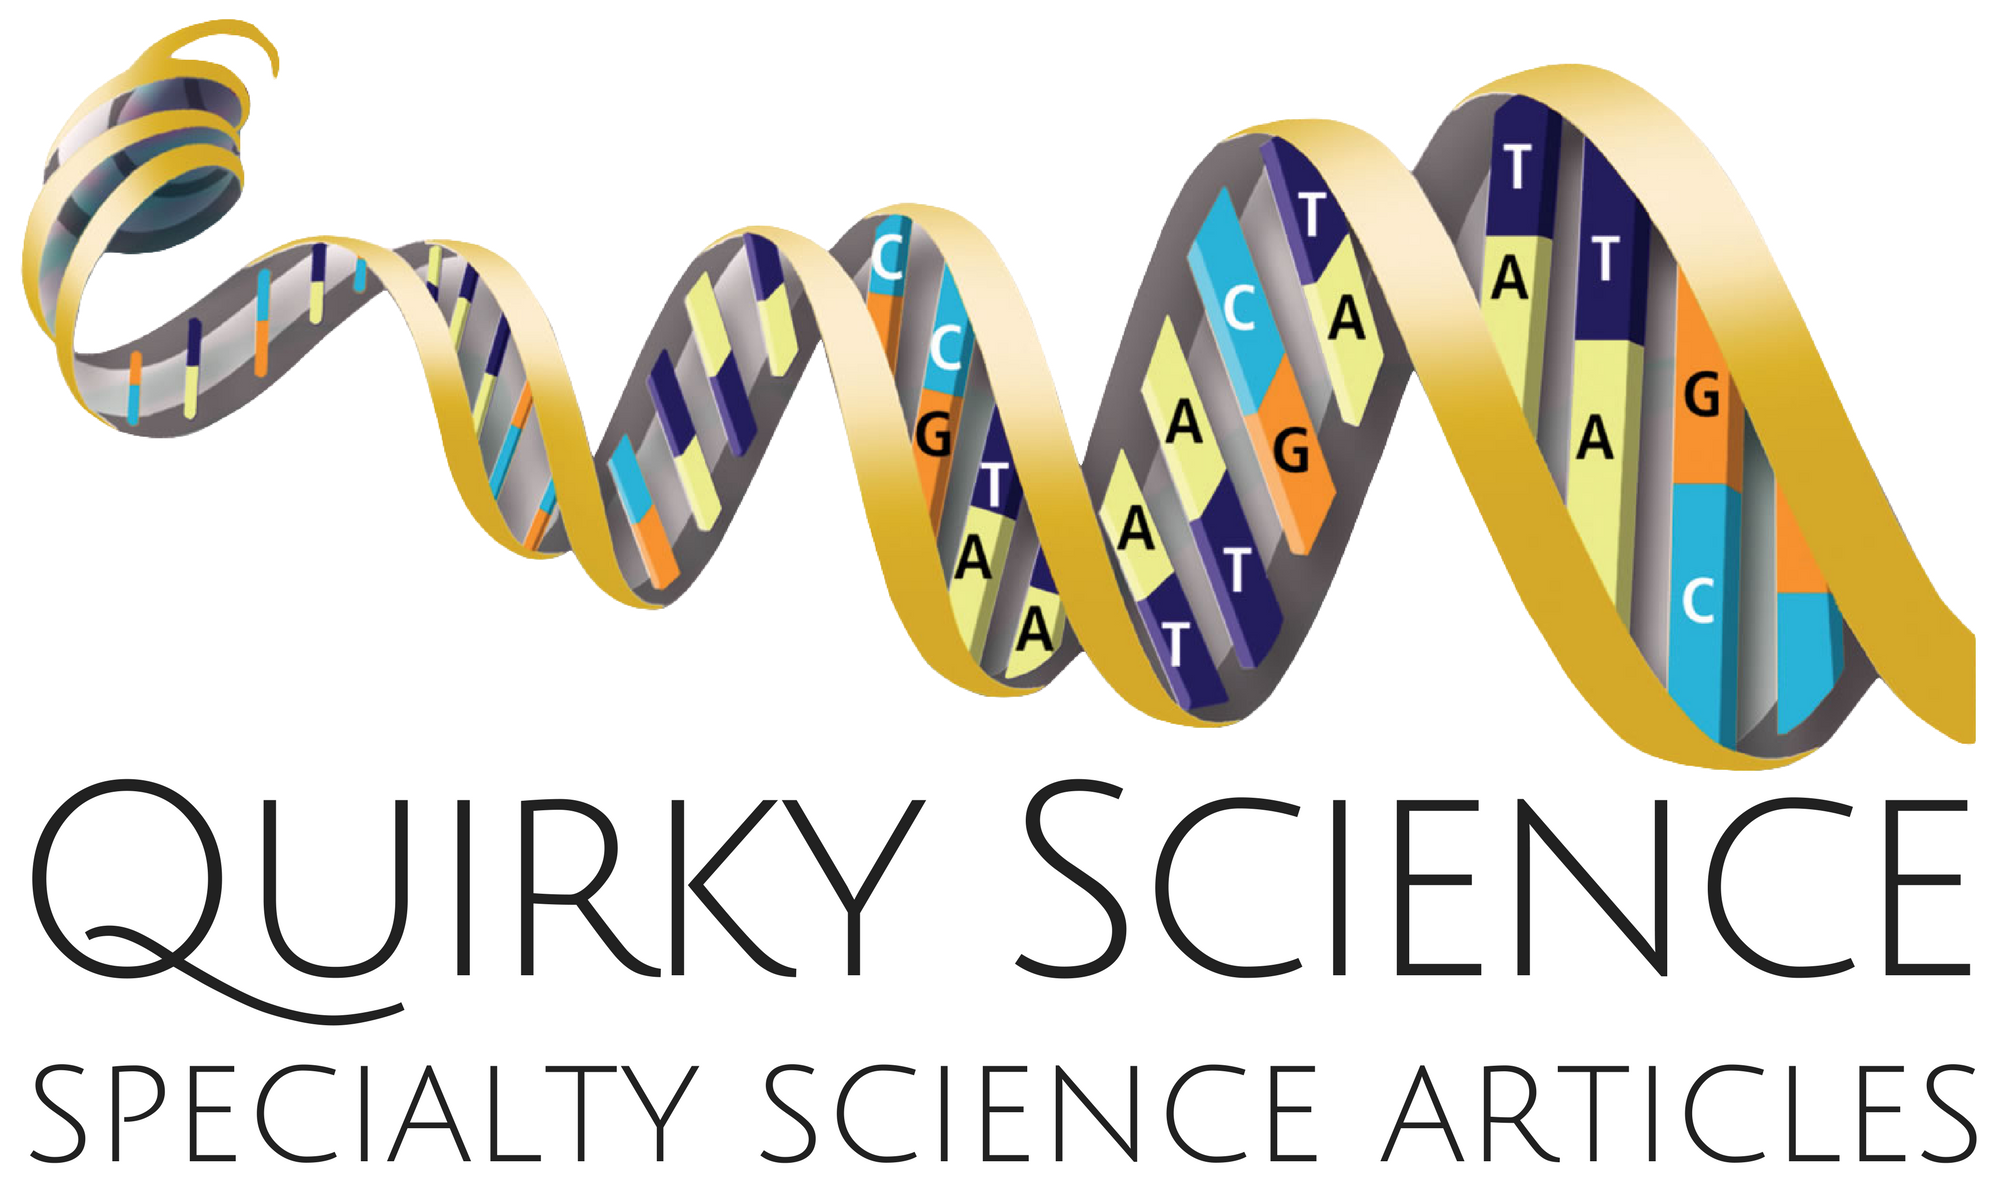 Quirky Science | Specialty Science Articles